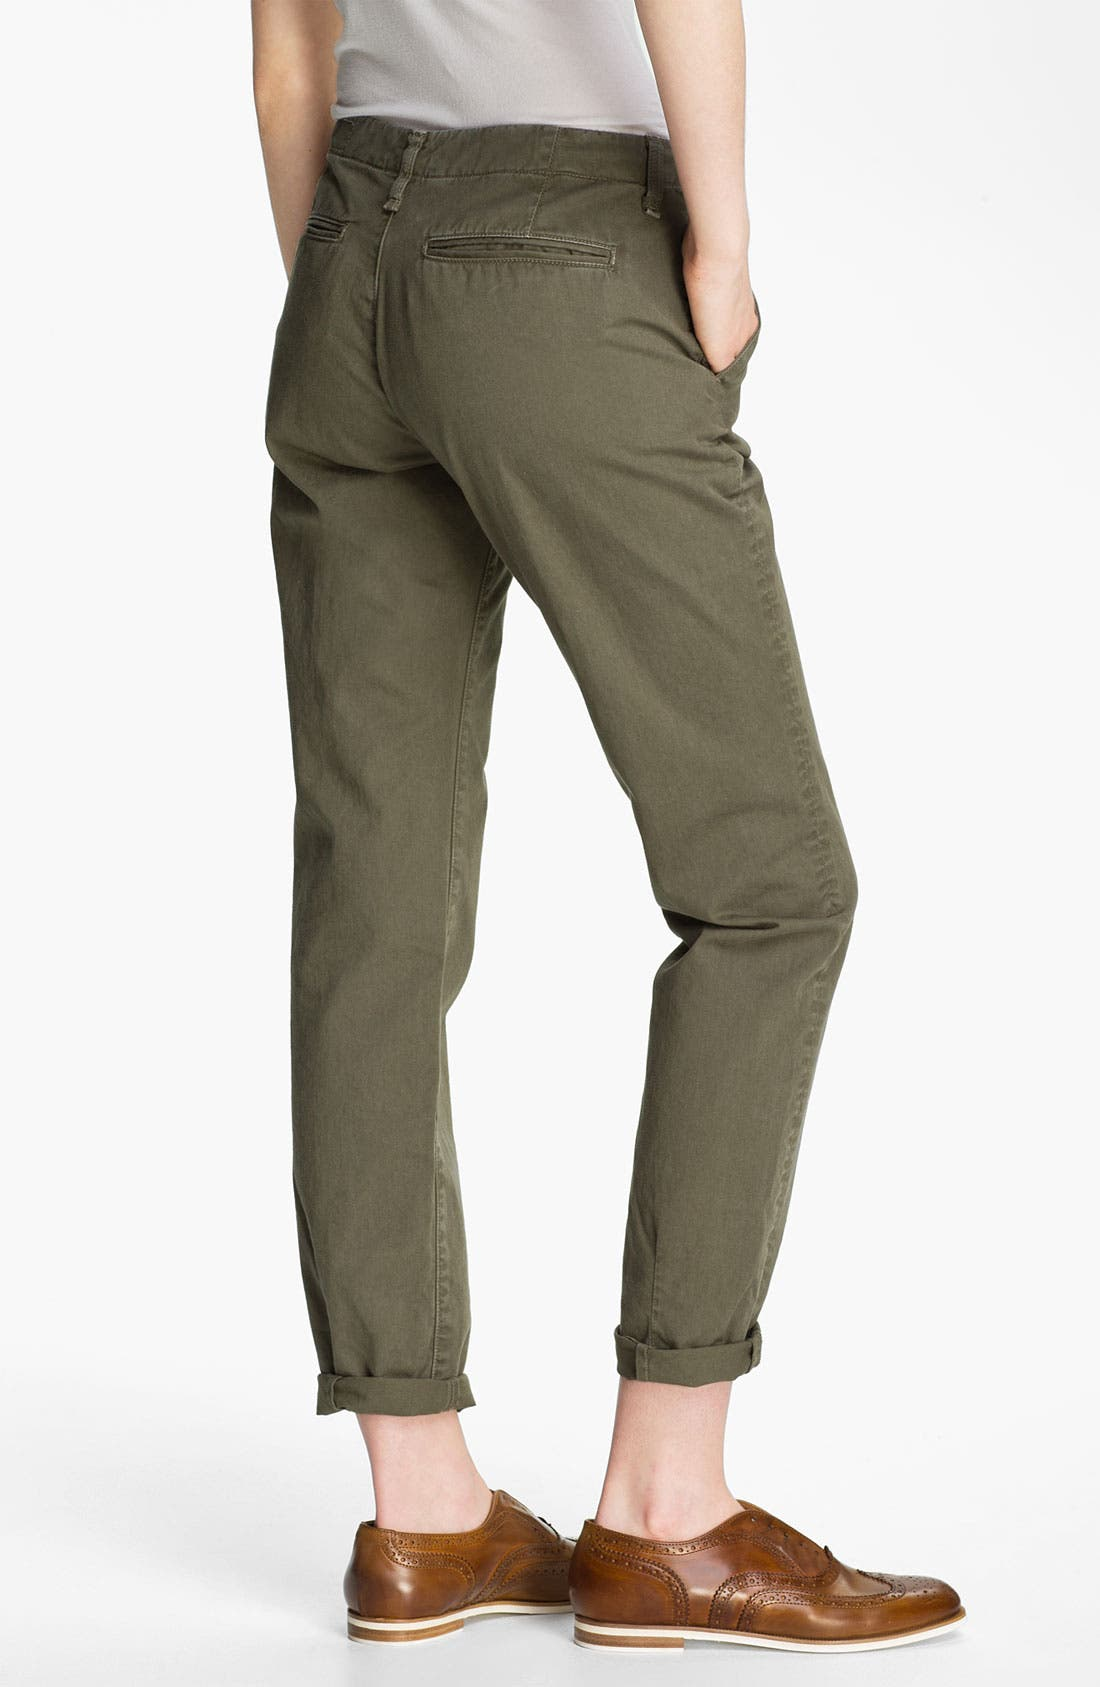 Alternate Image 2  - rag & bone/JEAN 'Portobello' Twill Pants